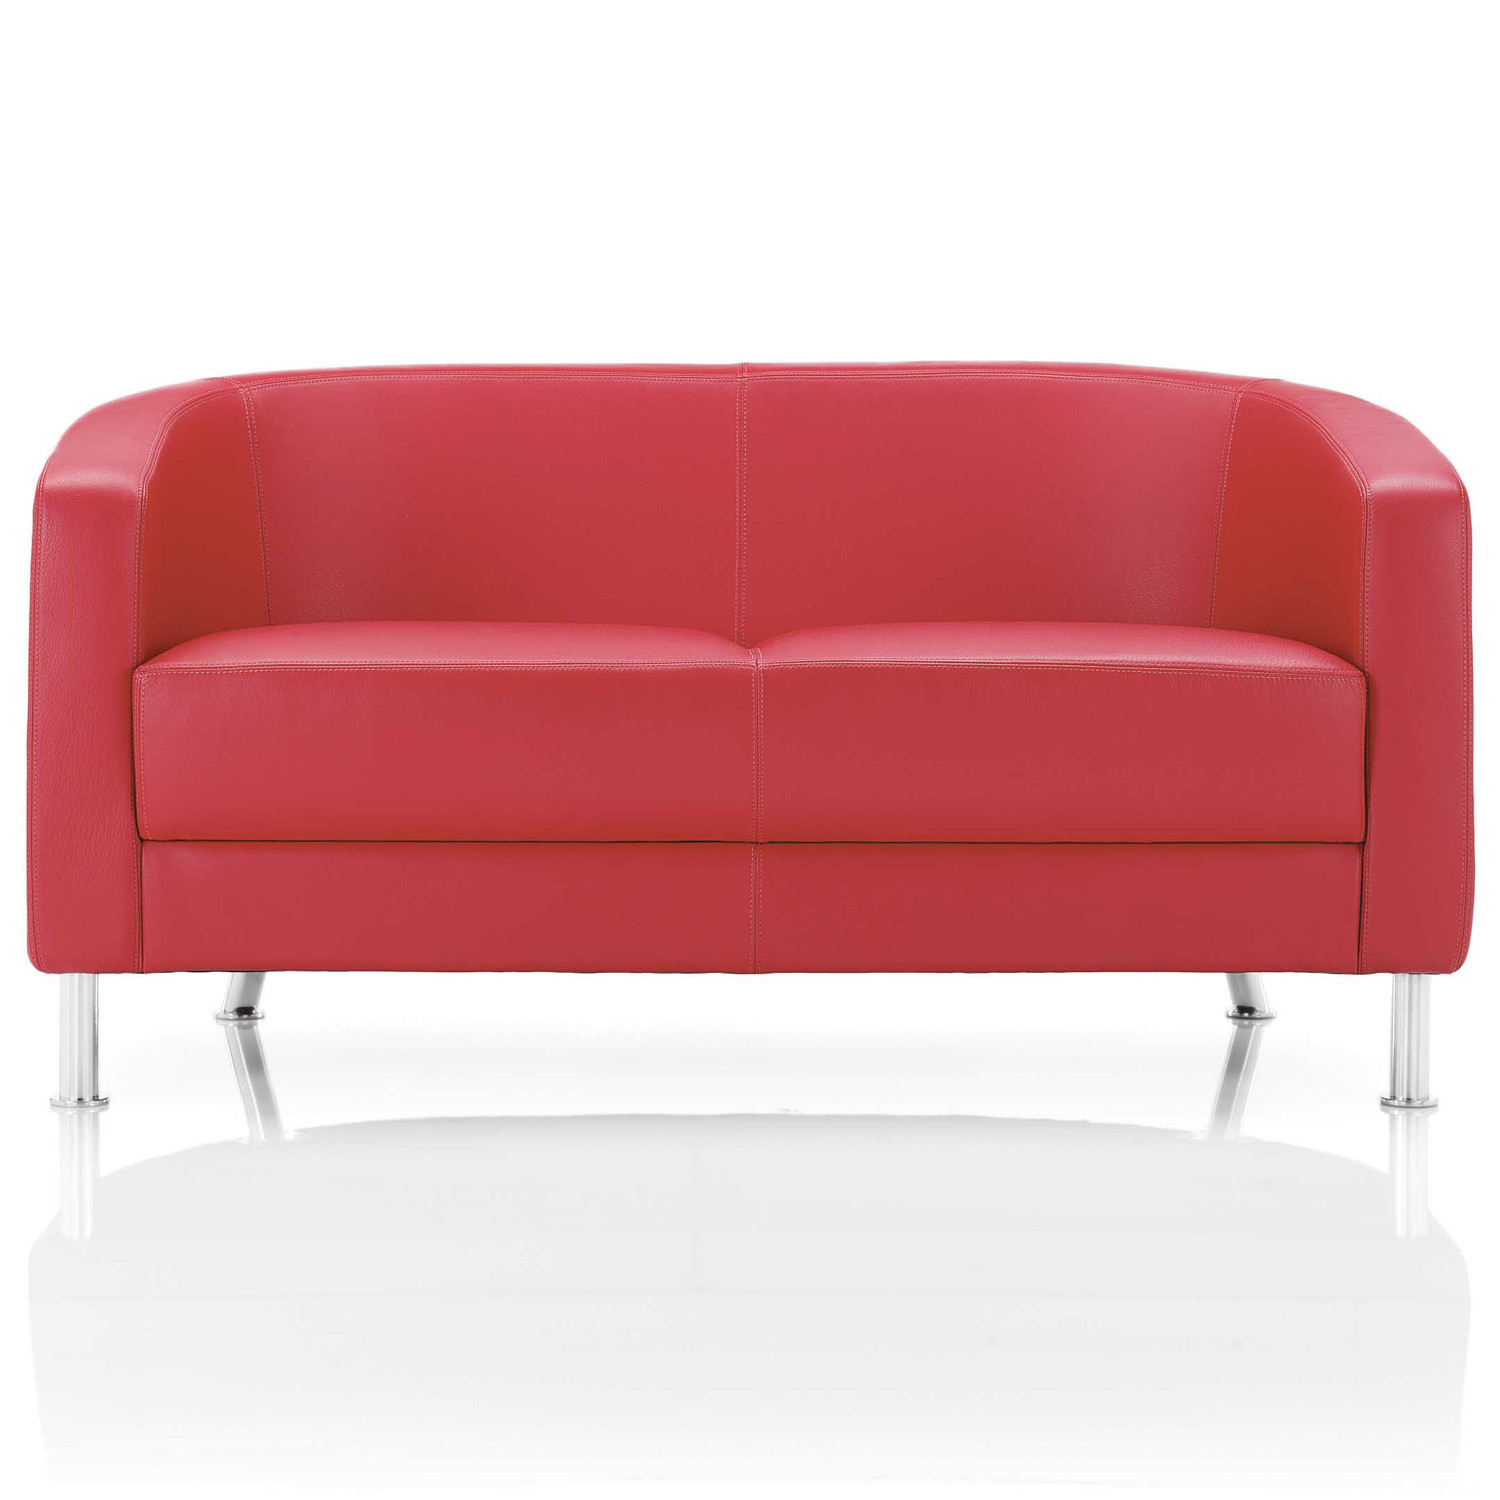 Zoot Two Seater Sofa by Boss Design